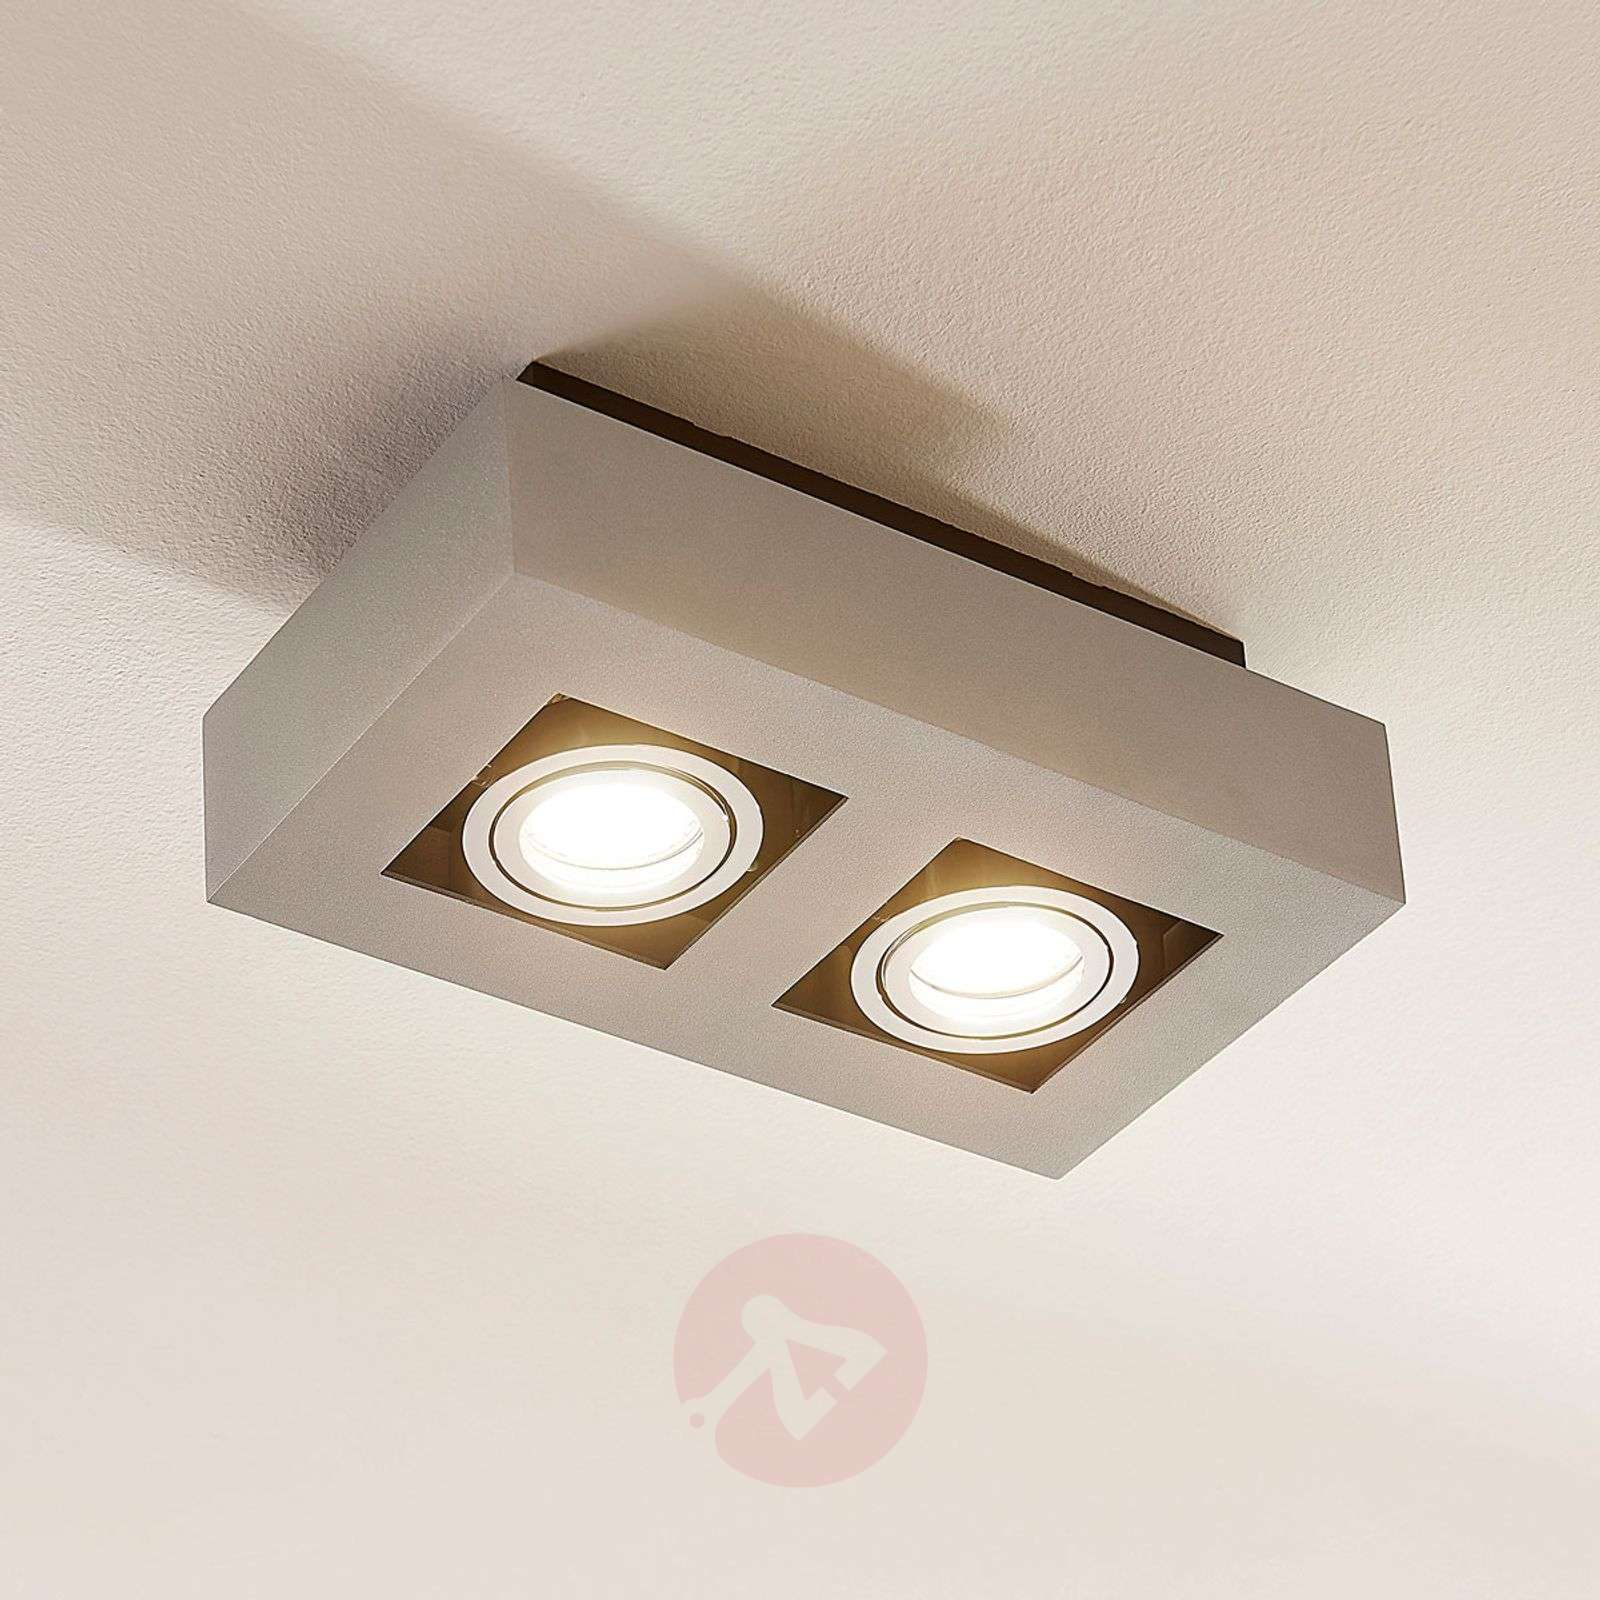 2-bulb Vince LED ceiling light-9620074-01